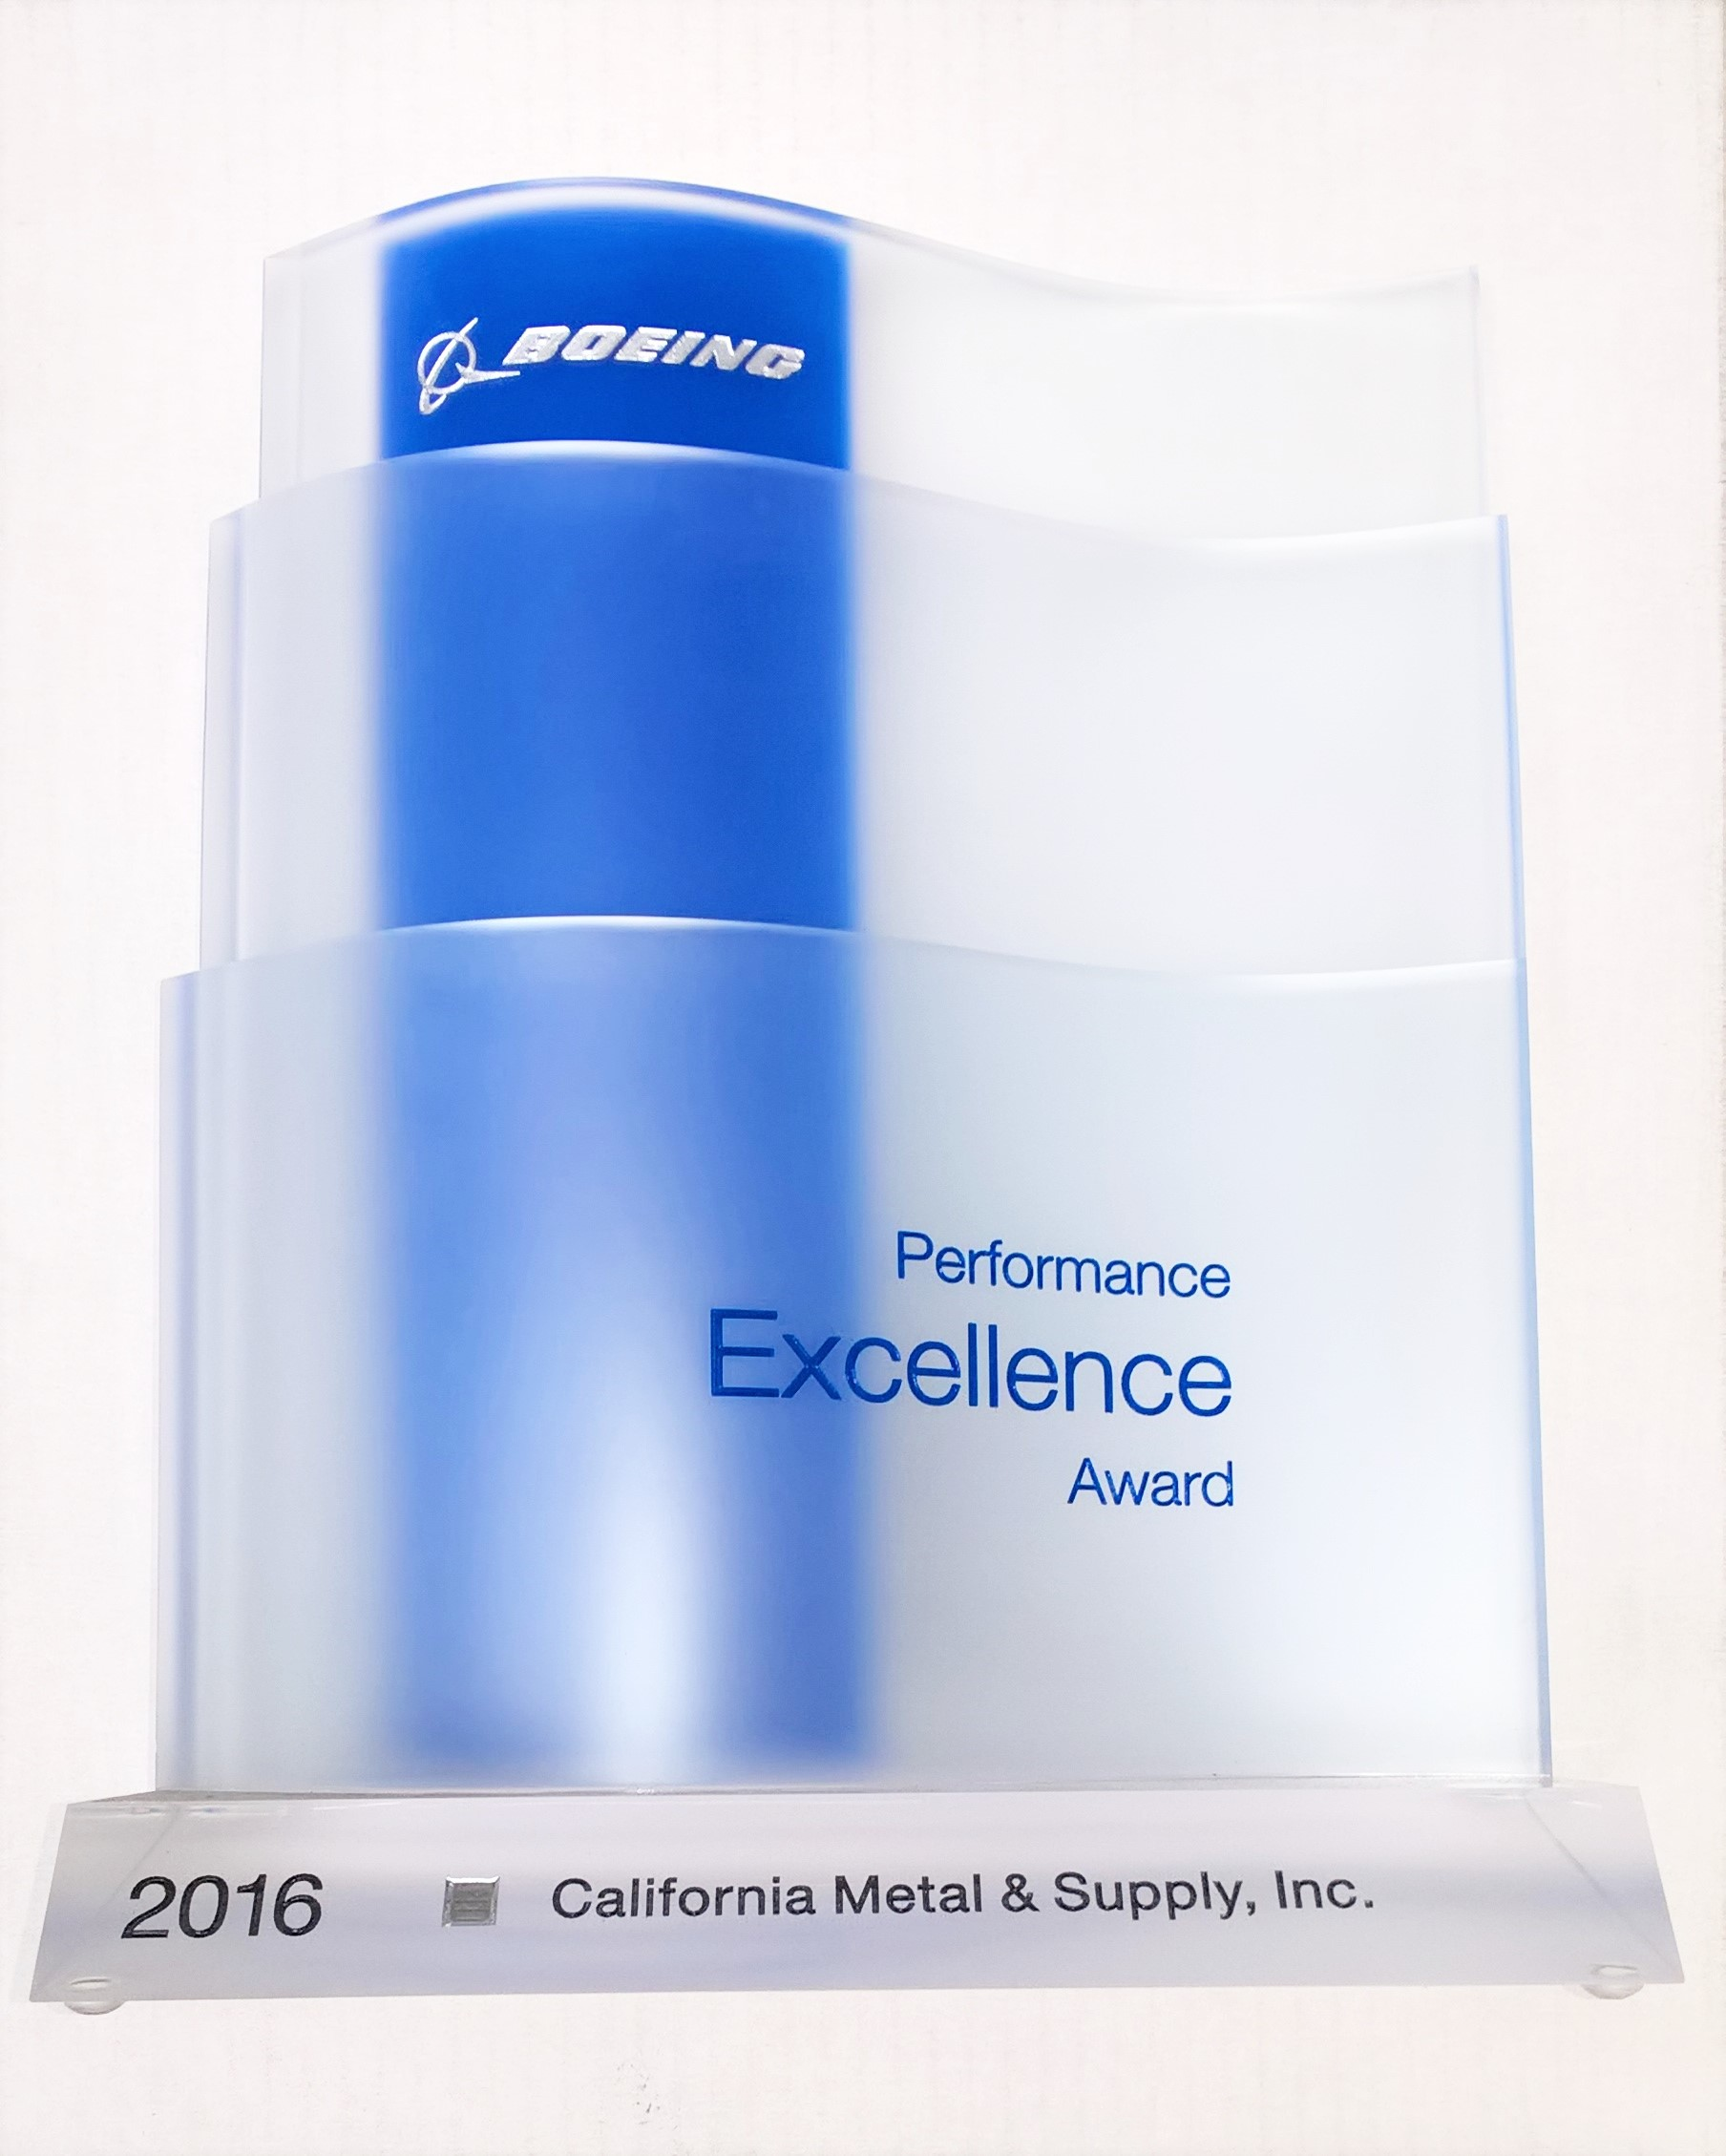 2016 Boeing Performance Excellence Award